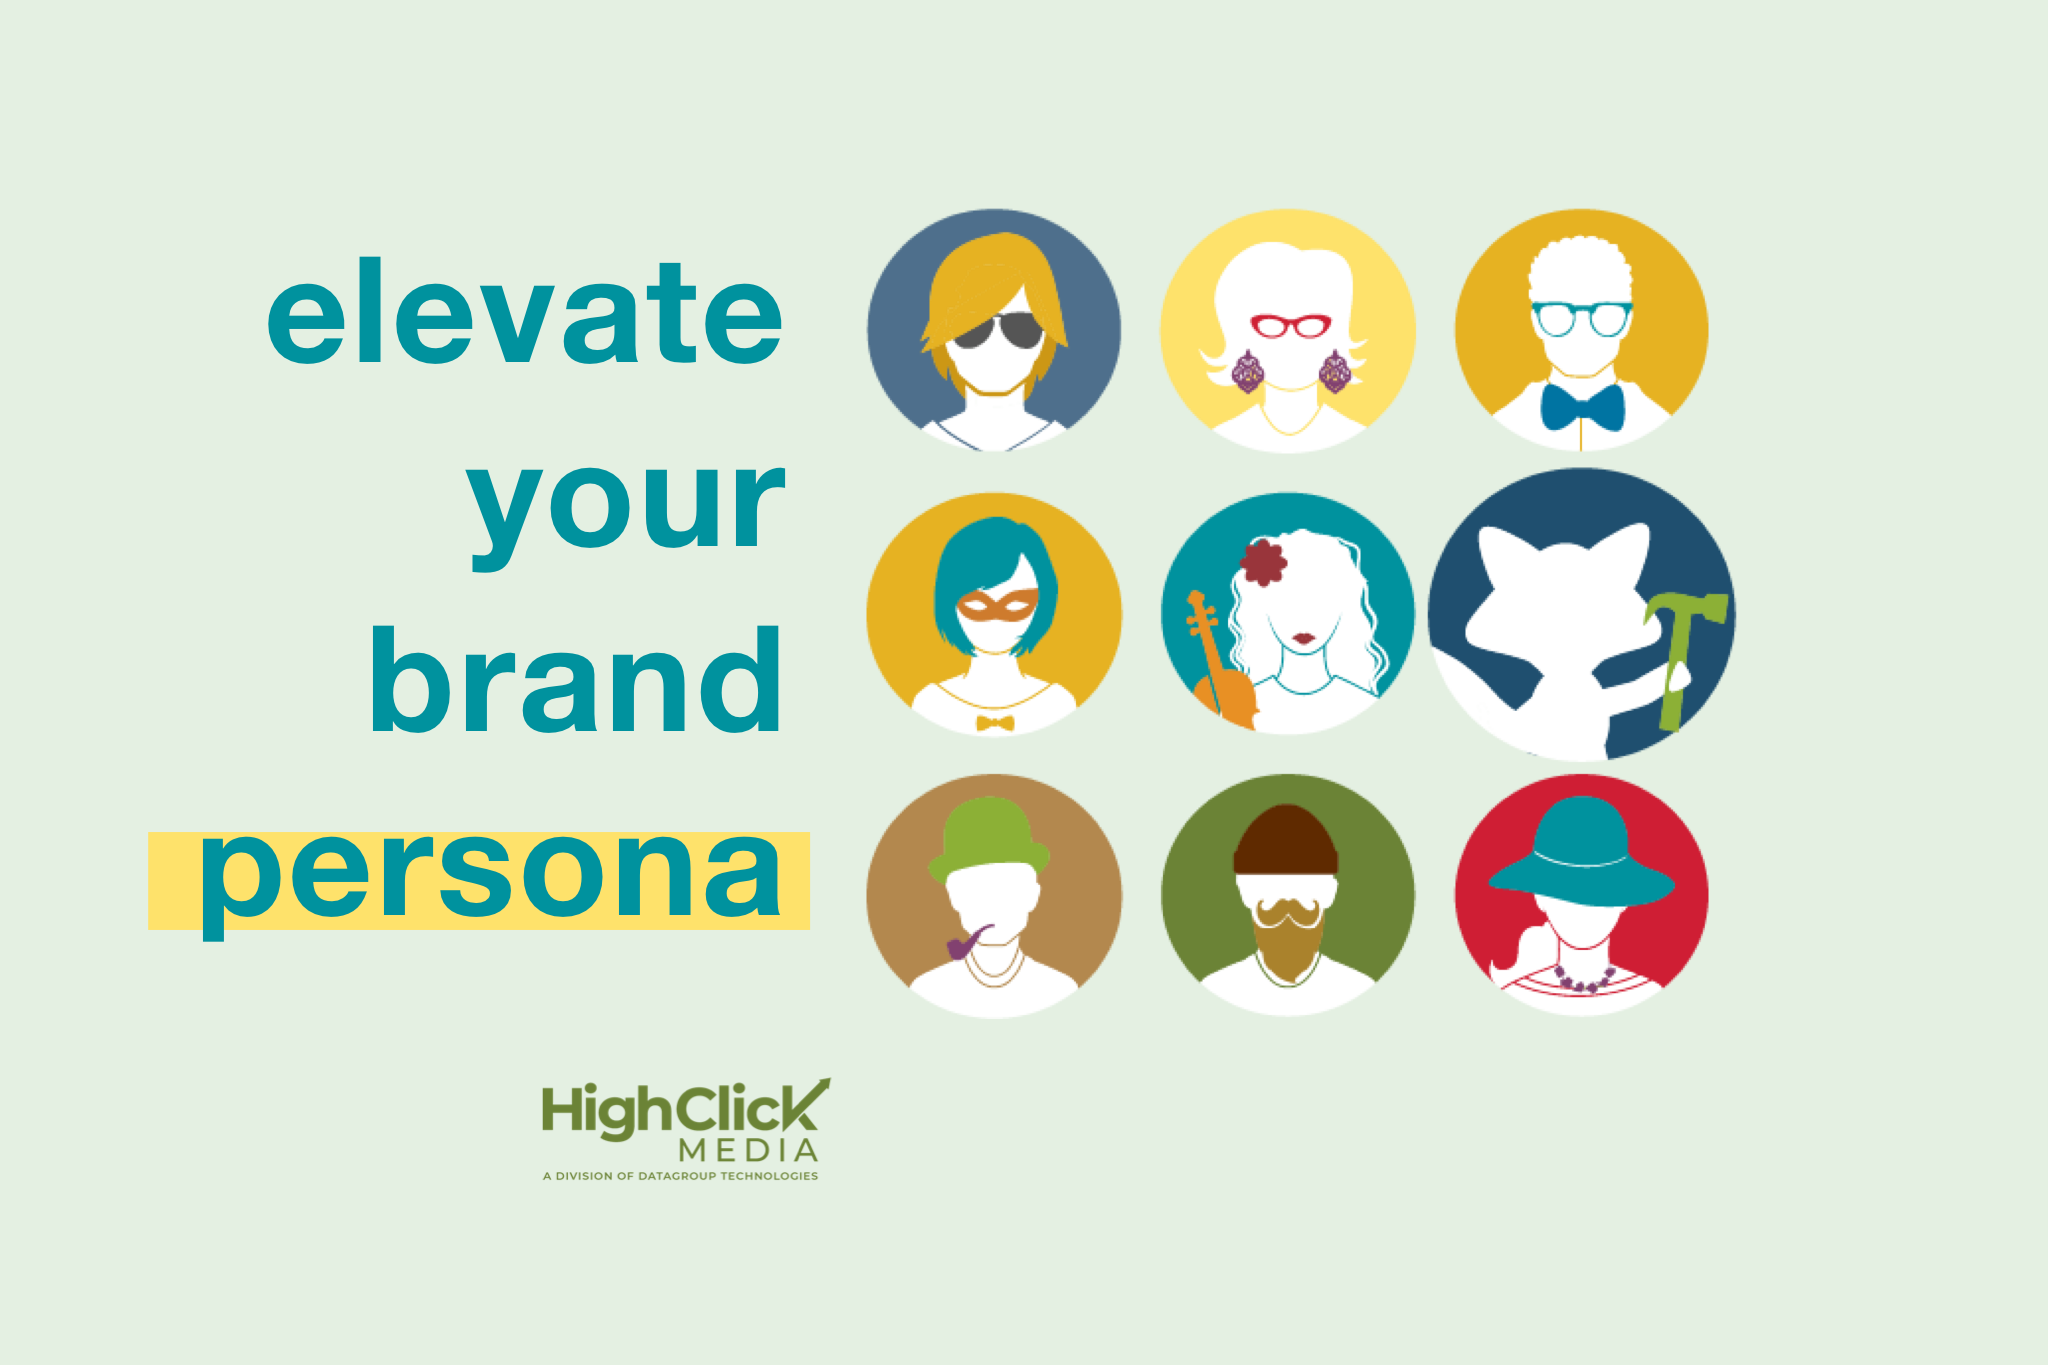 elevate_your_brand_persona_digital_marketing_greenville_nc_agency